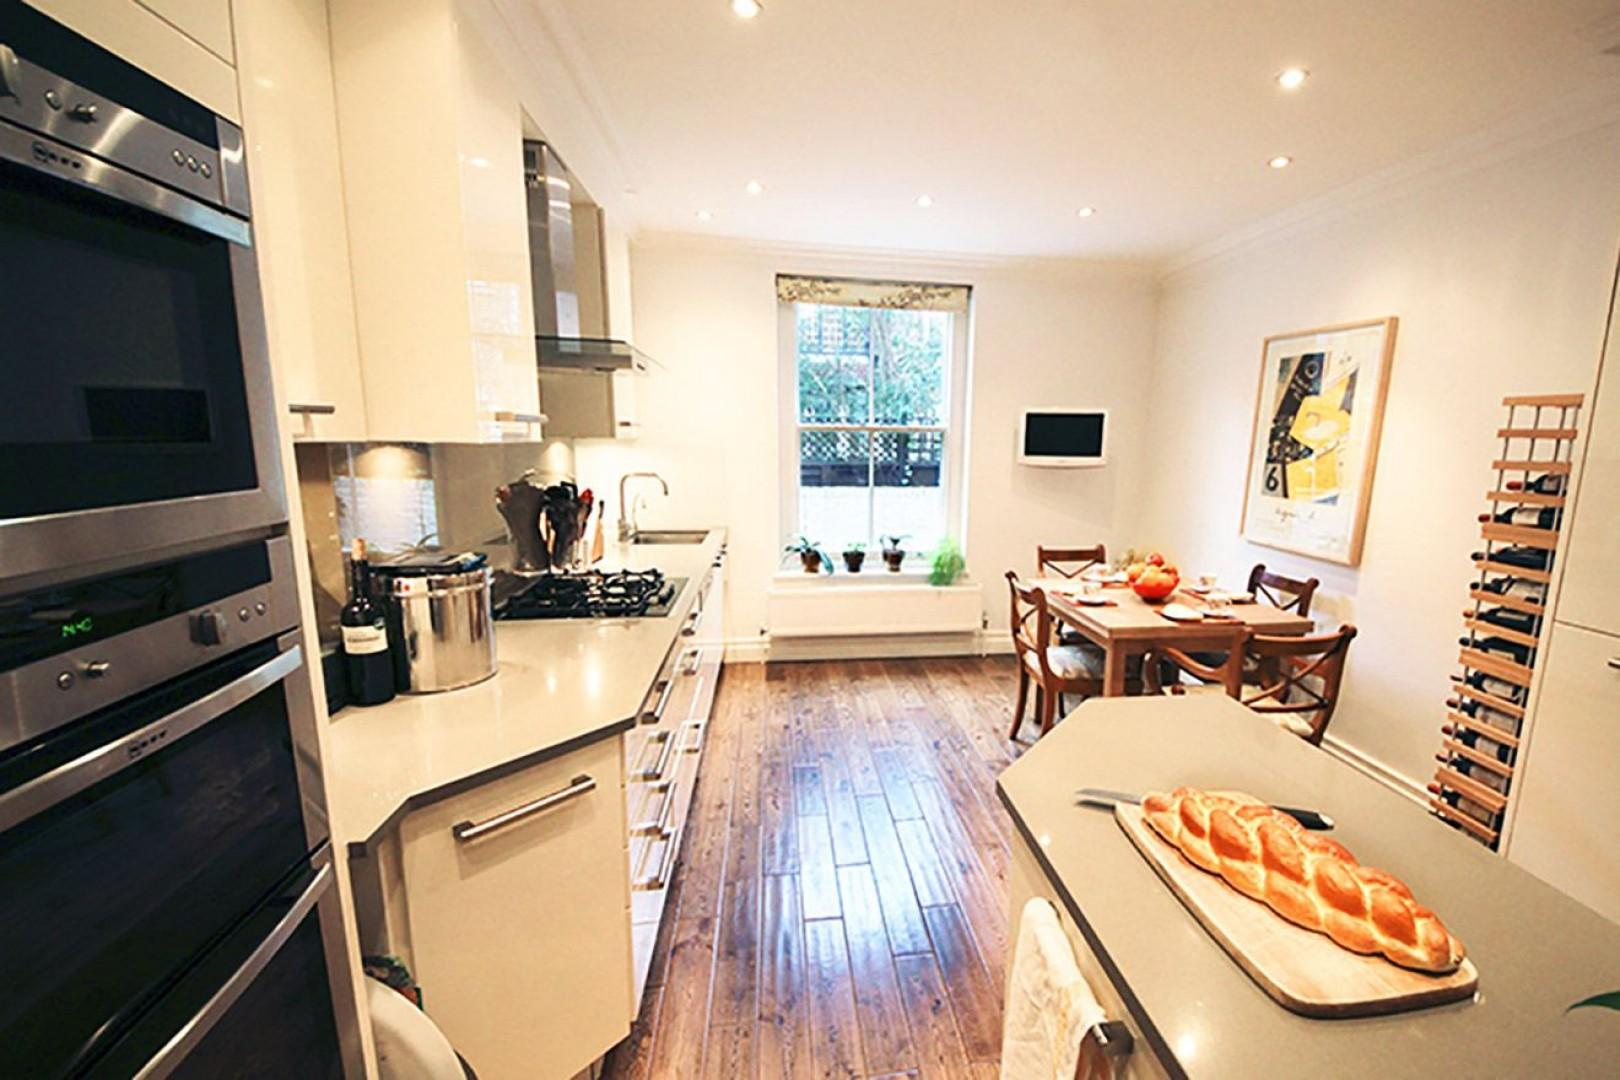 Gorgeous kitchen with large window and dining area